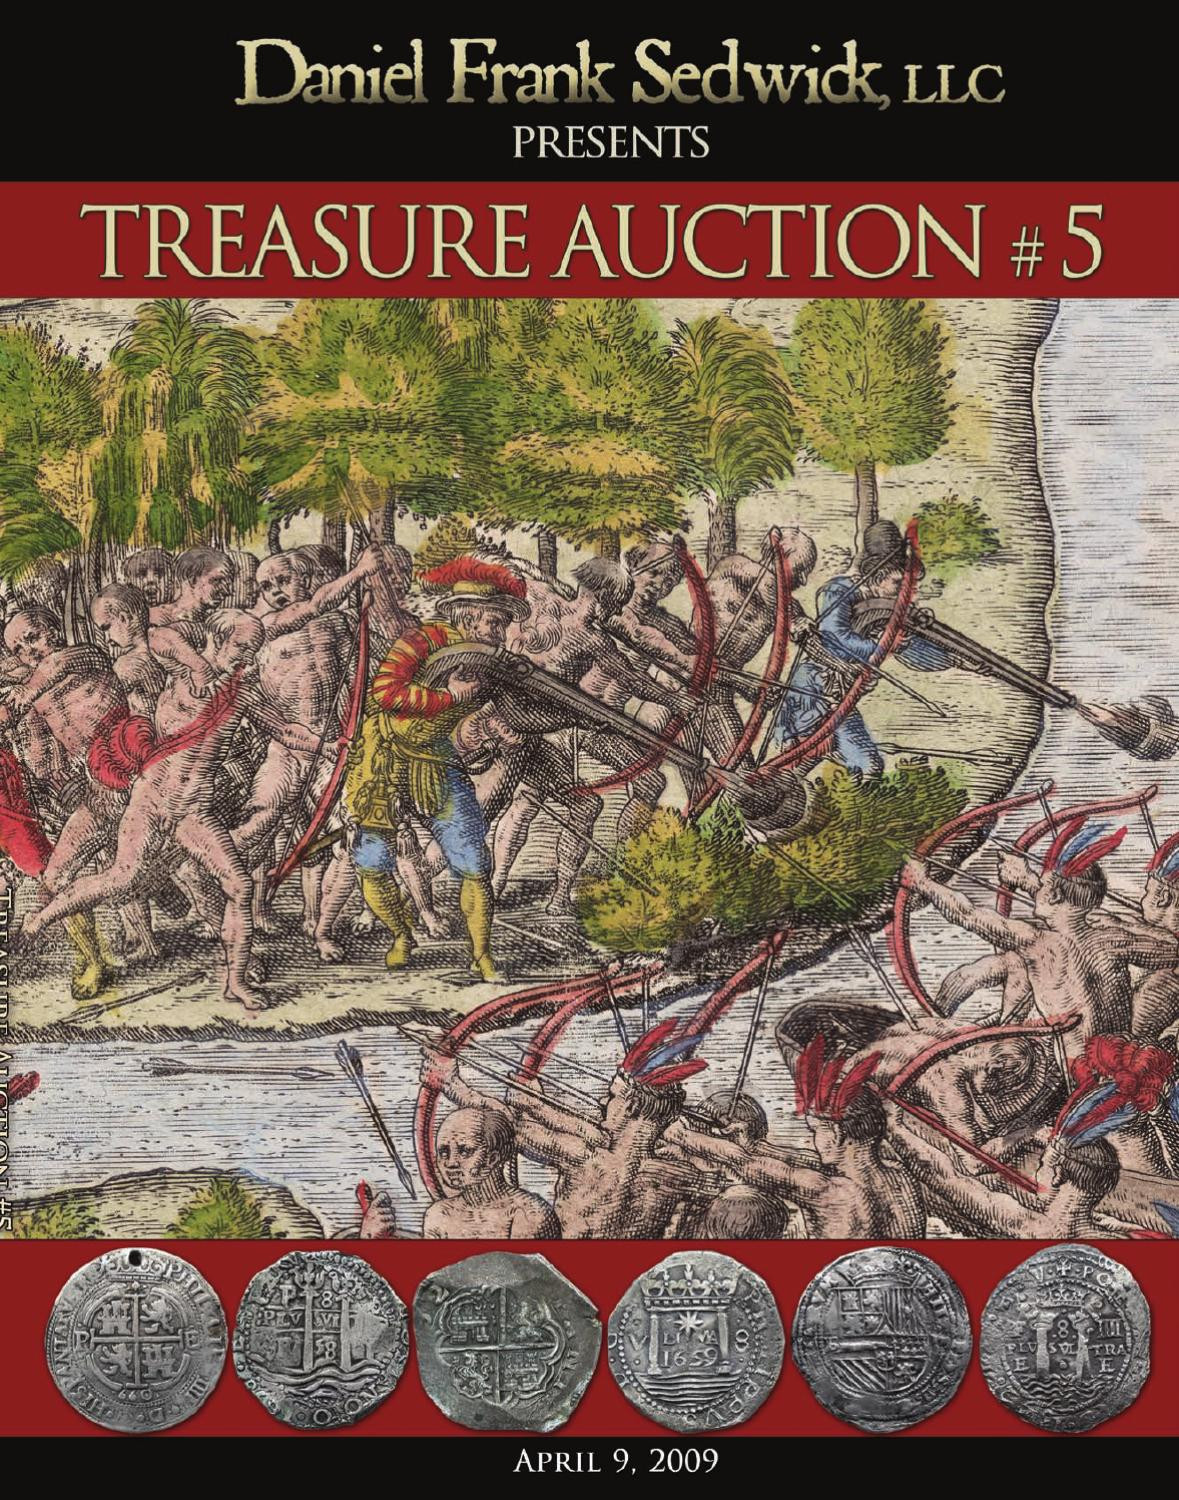 treasure craft vase of treasure and world coin auction 5 by daniel frank sedwick llc issuu in page 1